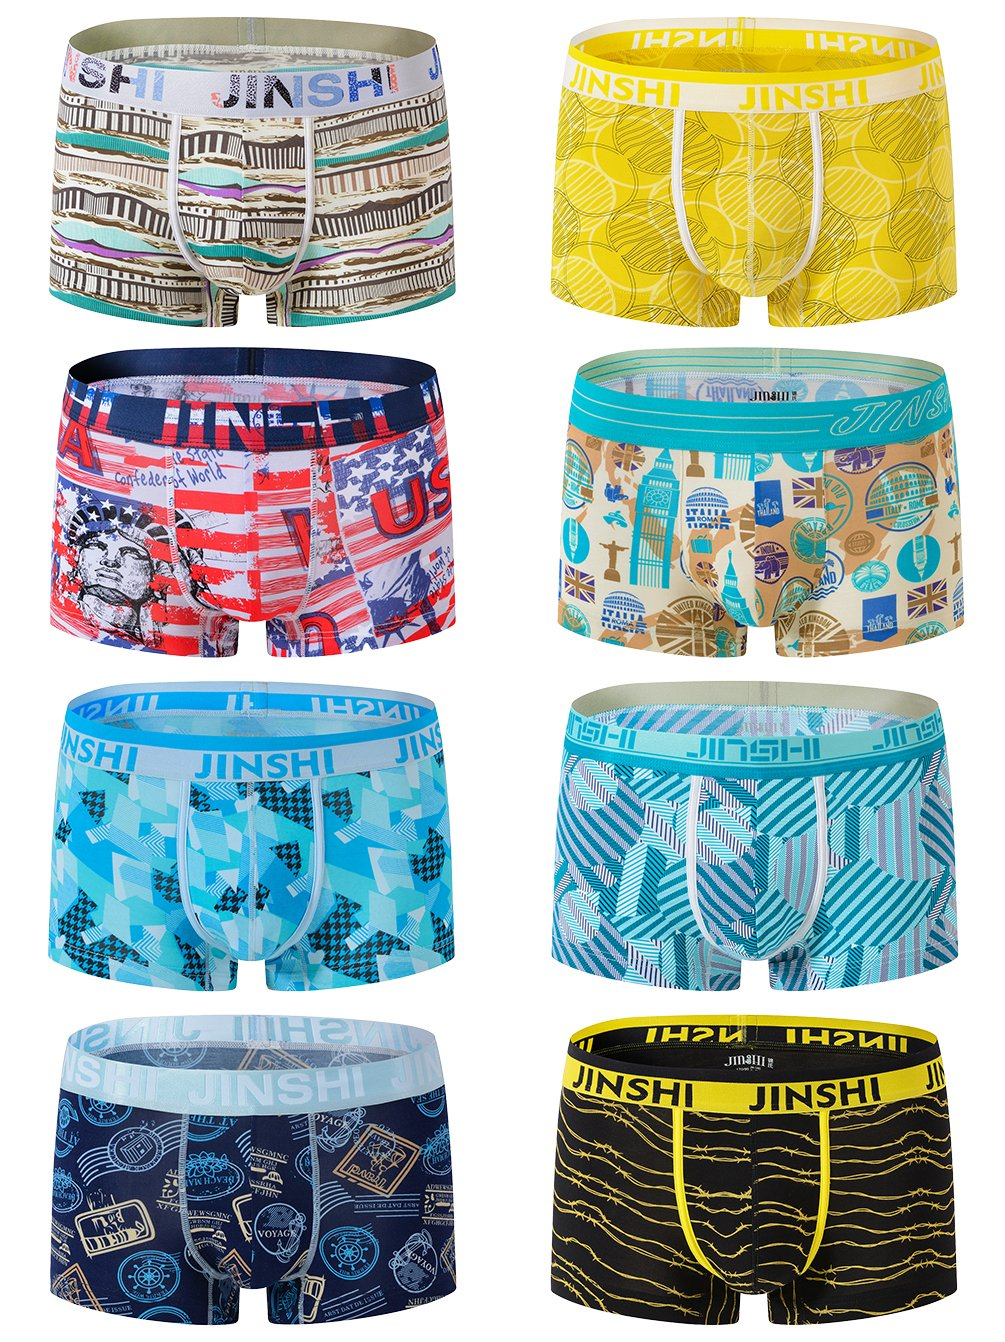 JINSHI Men's Boxer Briefs Athletic Soft Printed Bamboo Underwear 8 Pack 02 US XS/CN M